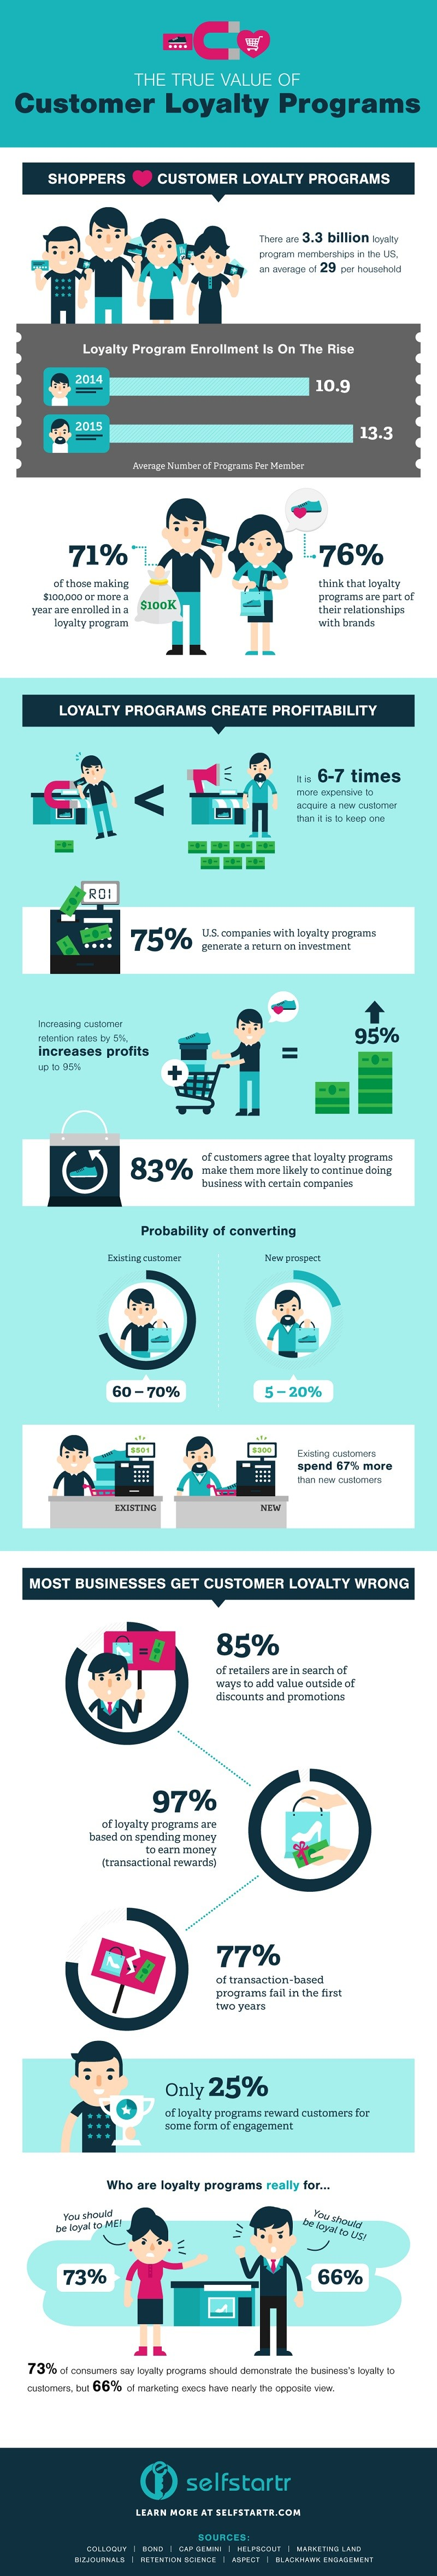 customer-loyalty-programs-infographic.jpg